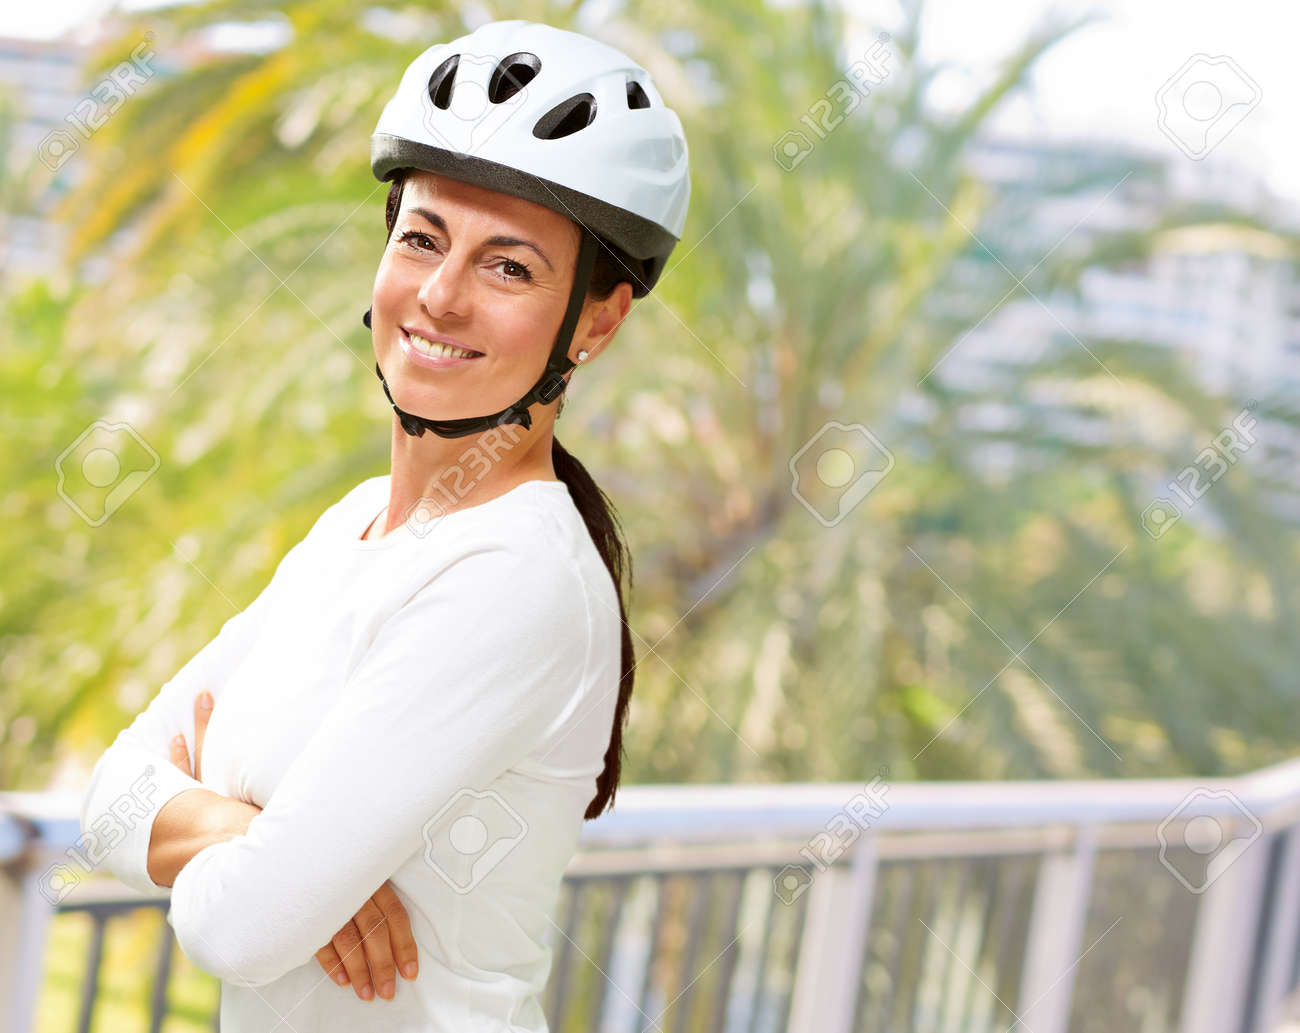 Woman Wearing Helmet With Hands Folded, Outdoor Stock Photo - 16289495